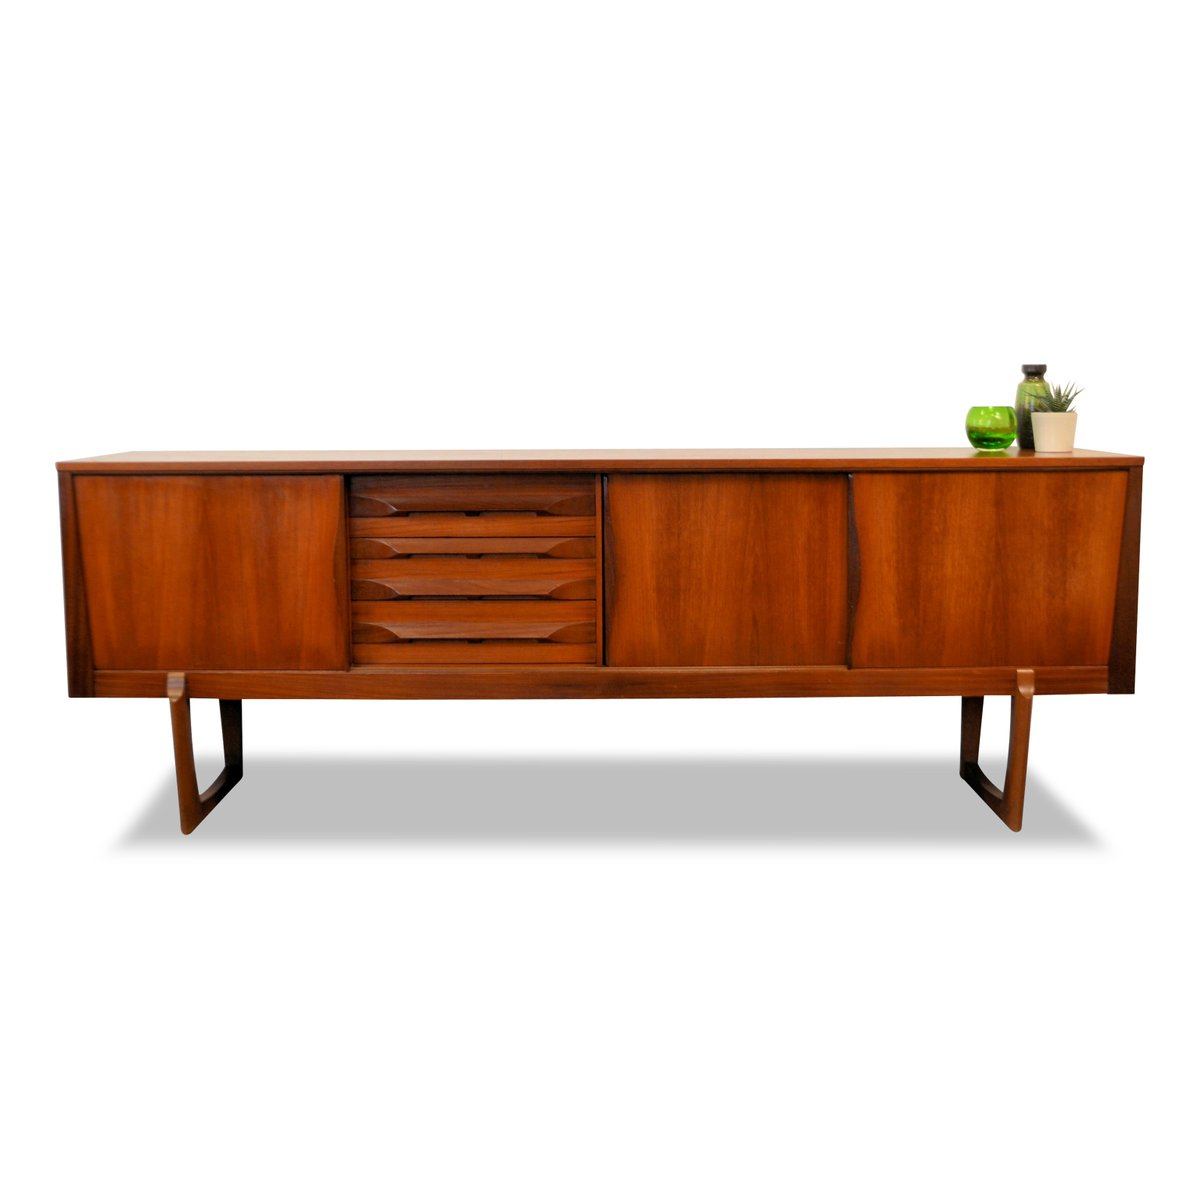 Mid century modern teak sideboard from elliots for sale at - Sideboard mid century ...